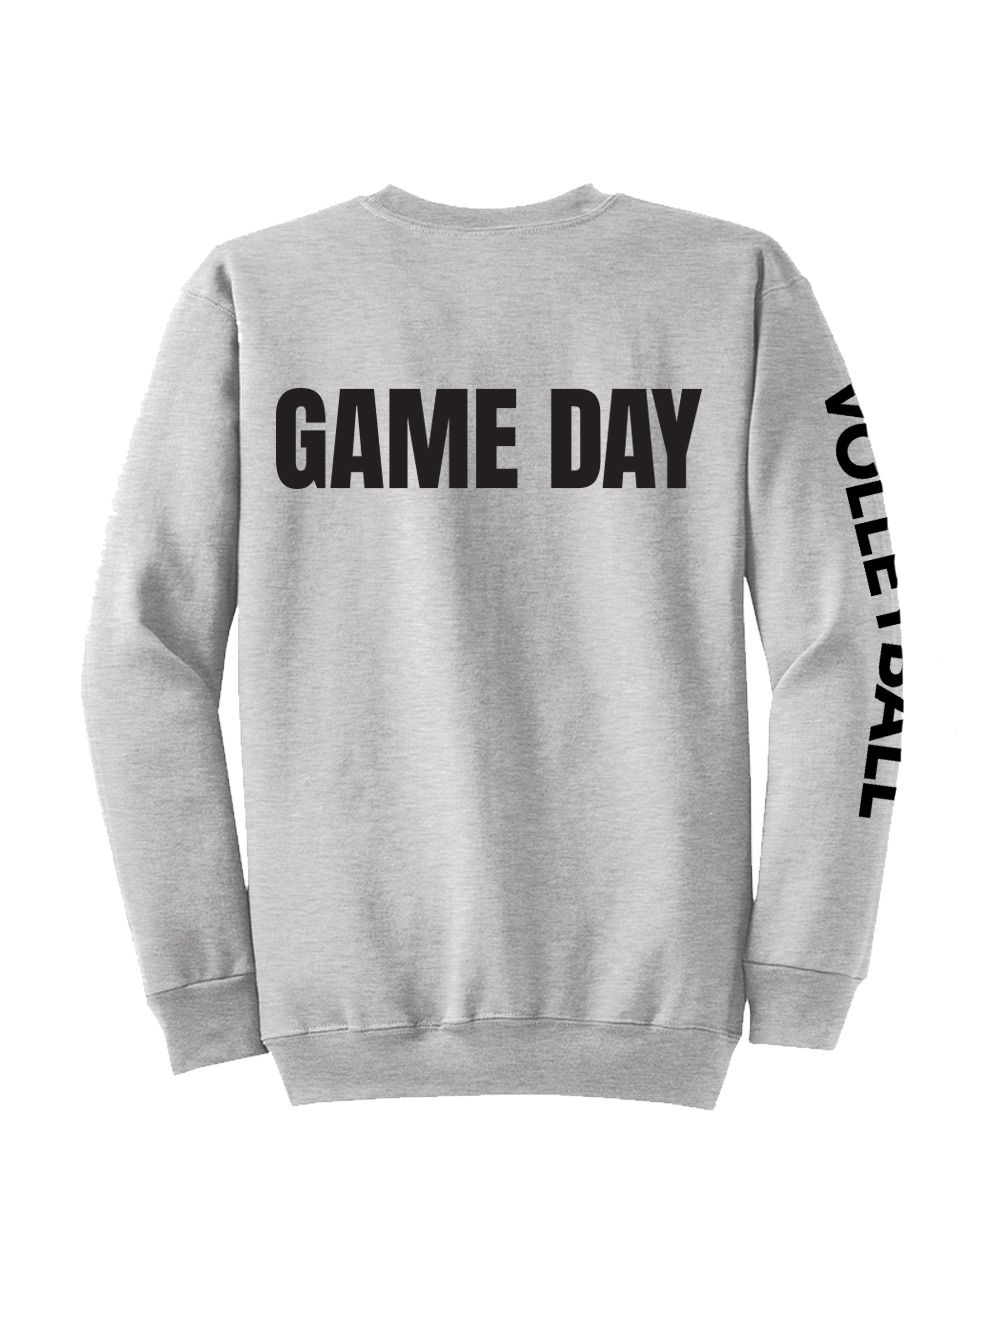 Game Day Crew Game Day Shirts Volleyball Sweatshirts Volleyball